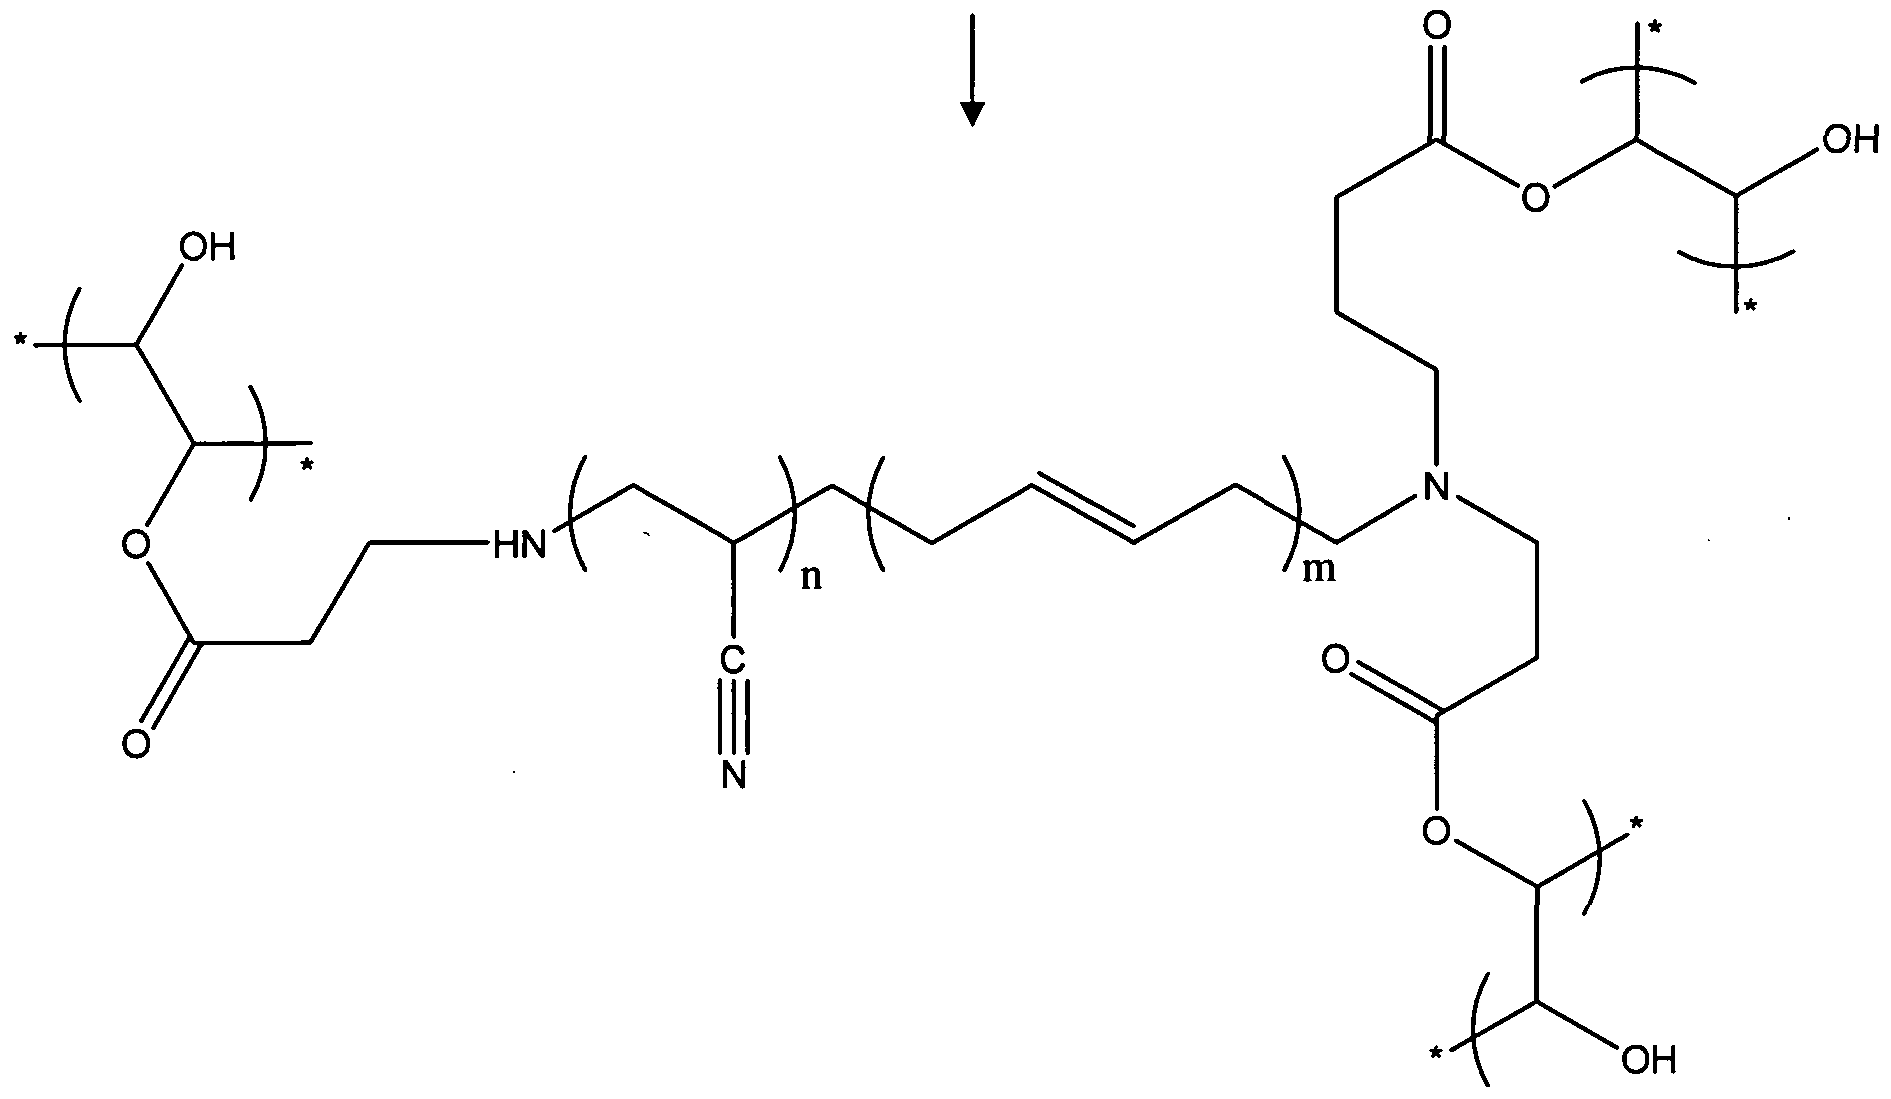 carbonyl compounds Yet it is interesting to note that, while carbonyl compounds are the most prevalent odor components of the compounds present, they have the smallest combined mass, with alcohol being a major component as whisky is legally required to be a minimum of 40% alcohol by volume.